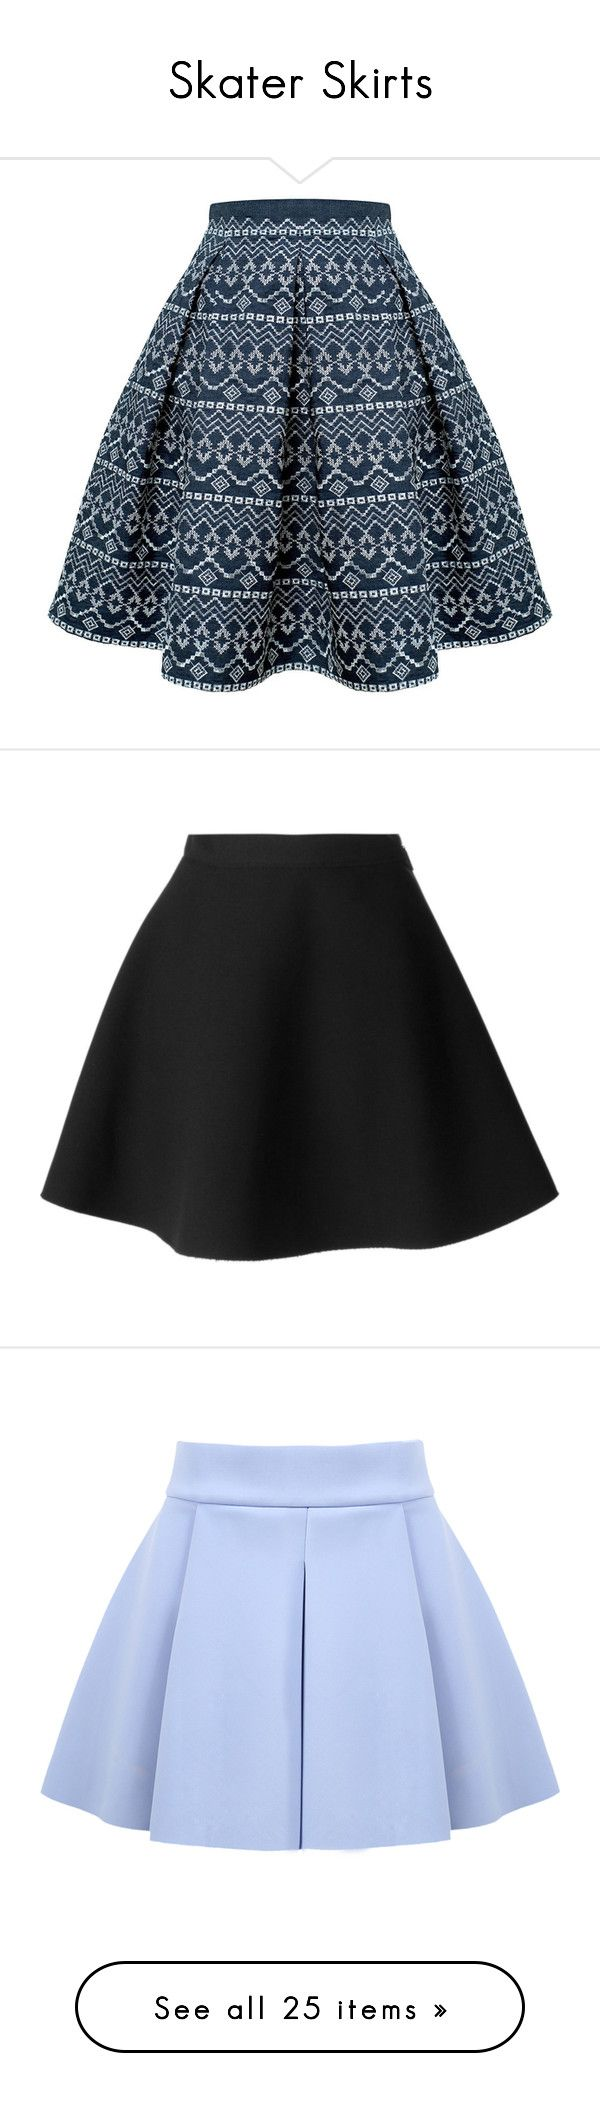 """Skater Skirts"" by brookieg711 on Polyvore featuring skirts, flared midi skirt, skater skirt, pleated midi skirt, flared skirt, flare skirt, black, black skirt, msgm skirt and black circle skirt"